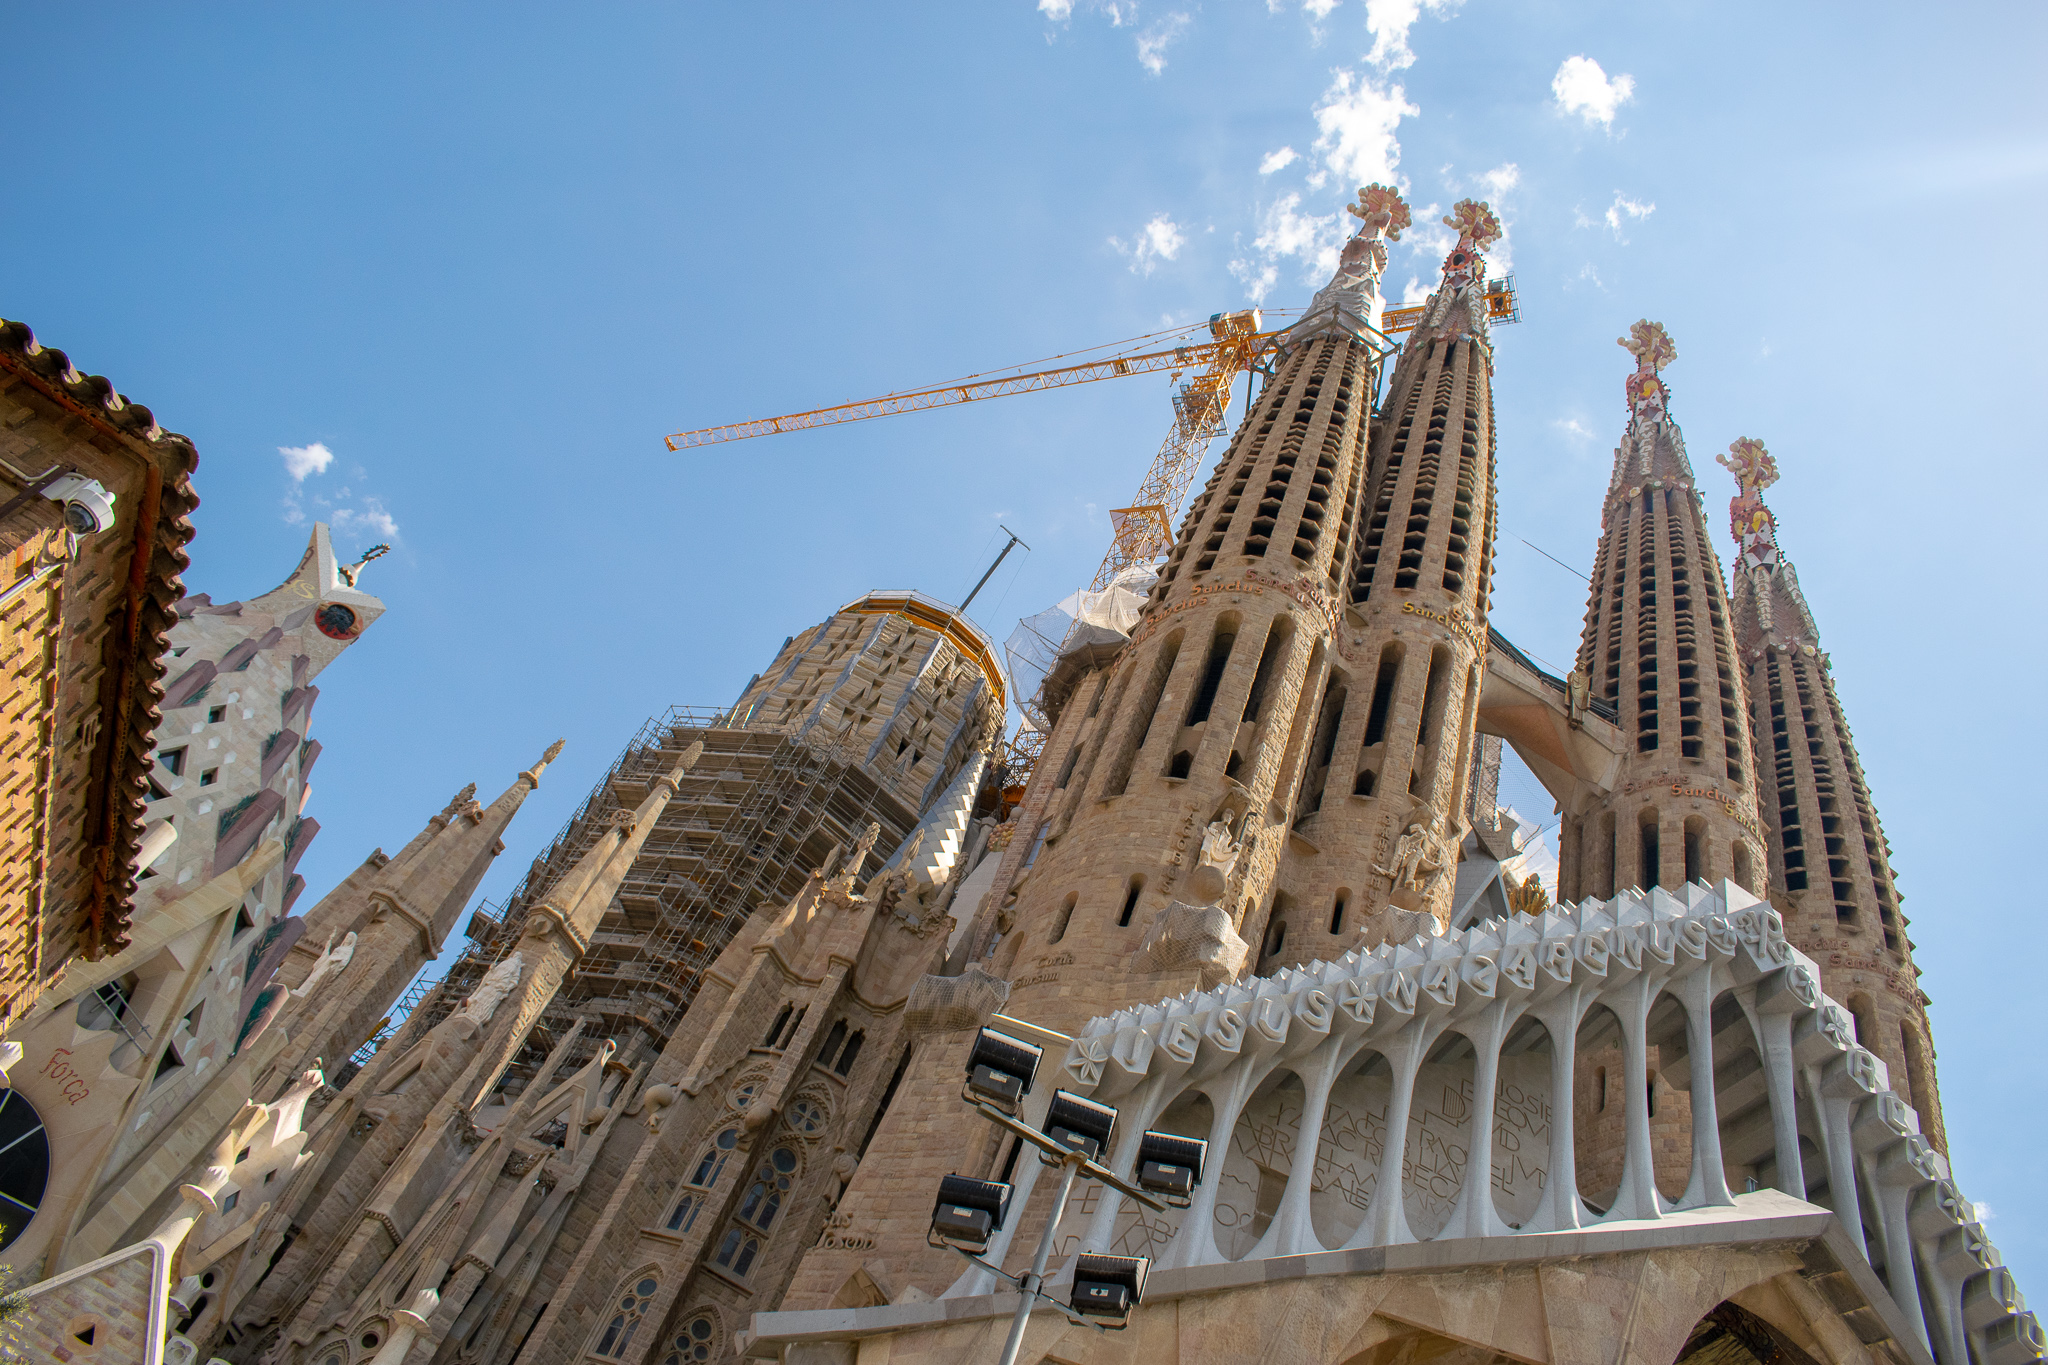 Work continues on Sagrada Familia which is expected to be completed in 2026.